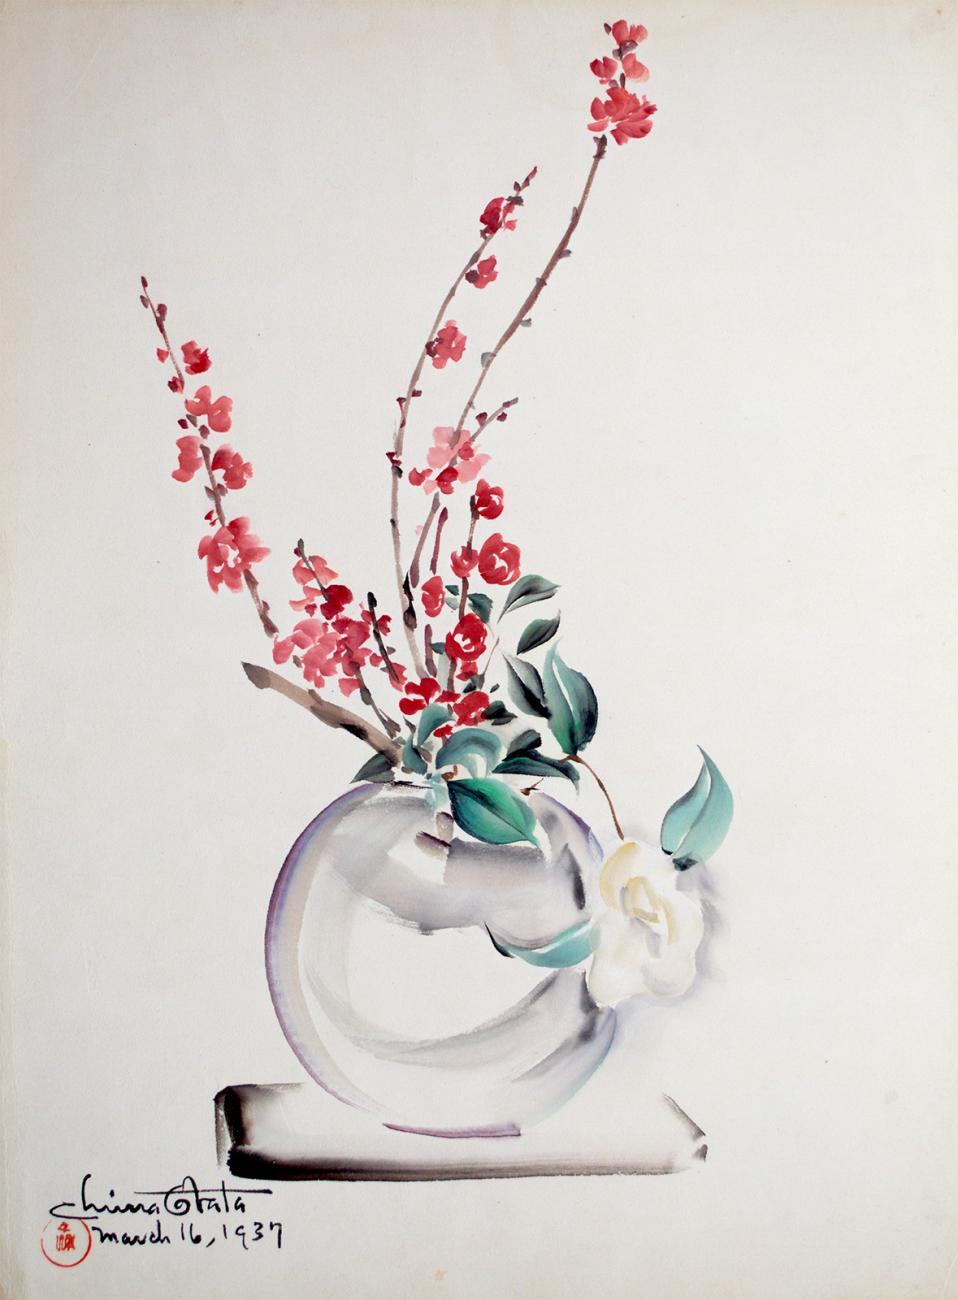 A watercolor image of a vase with flowers